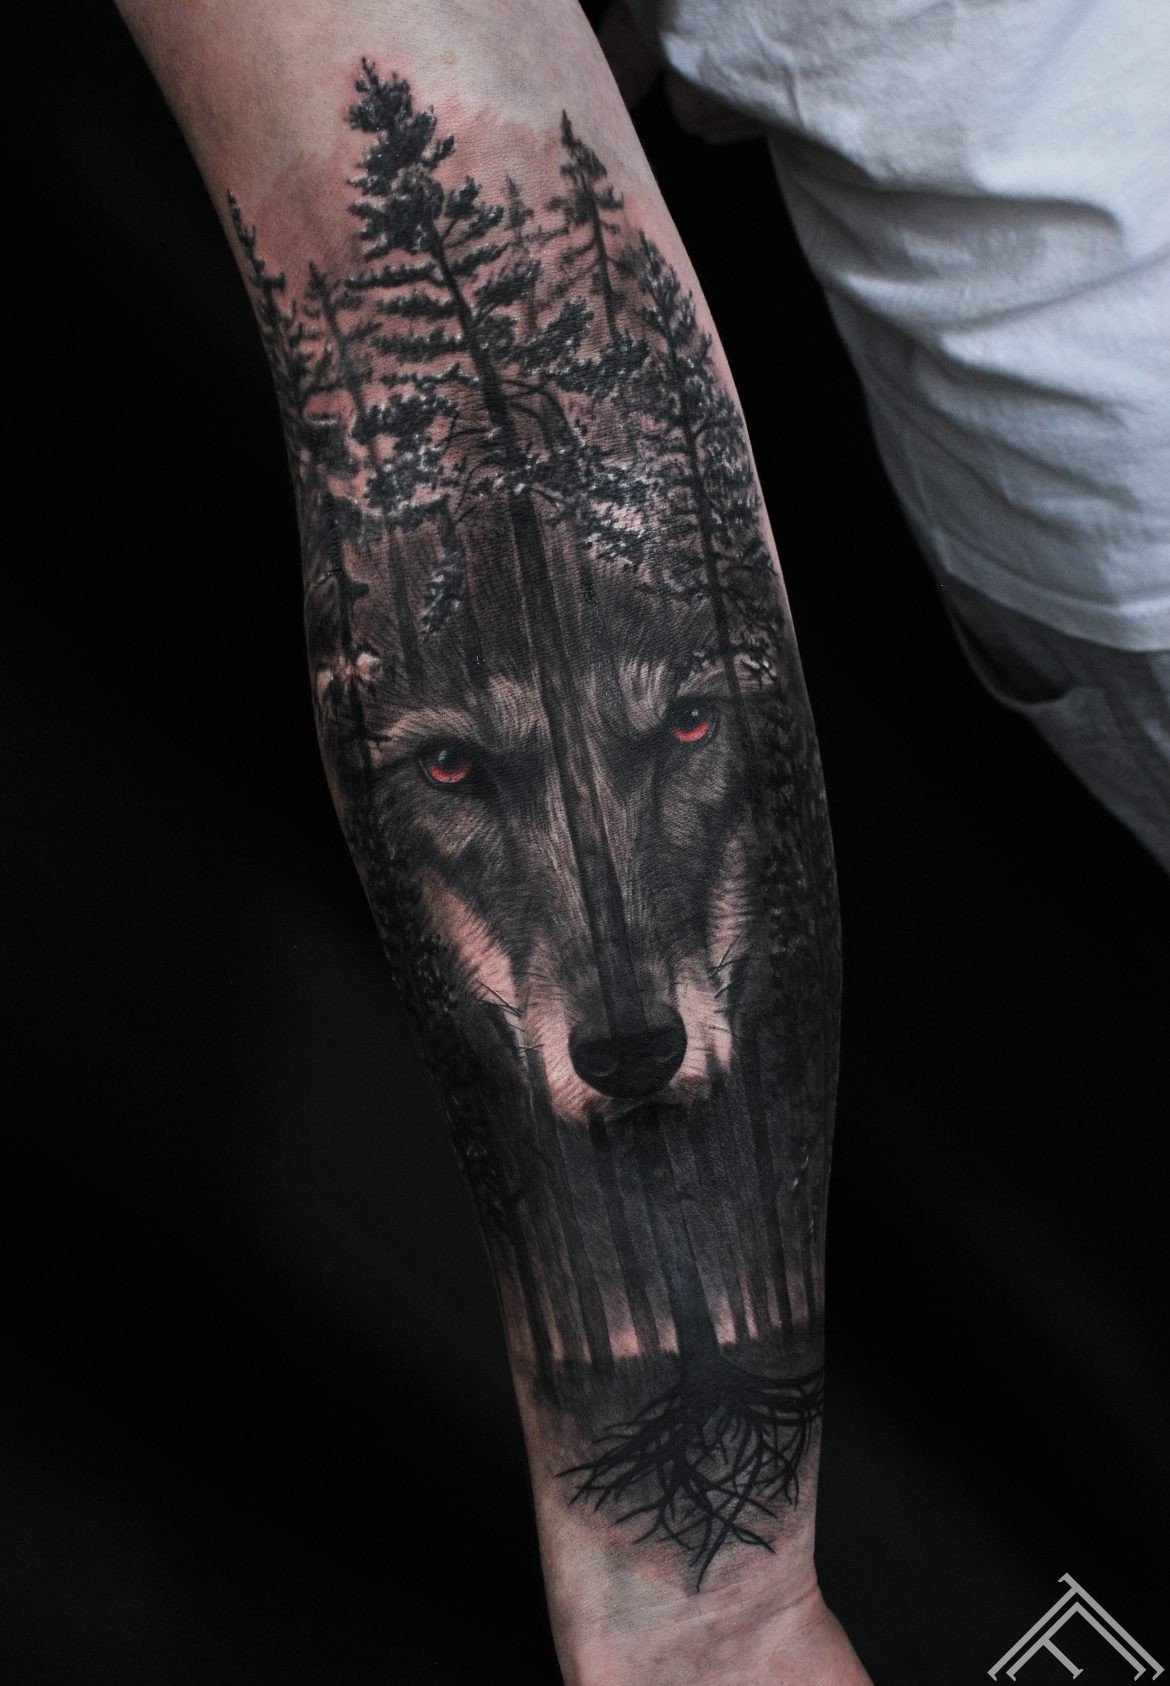 janisanderson-tattoo-tattoofrequency-wolf-vilks-forest-mezs-art-maksla-riga